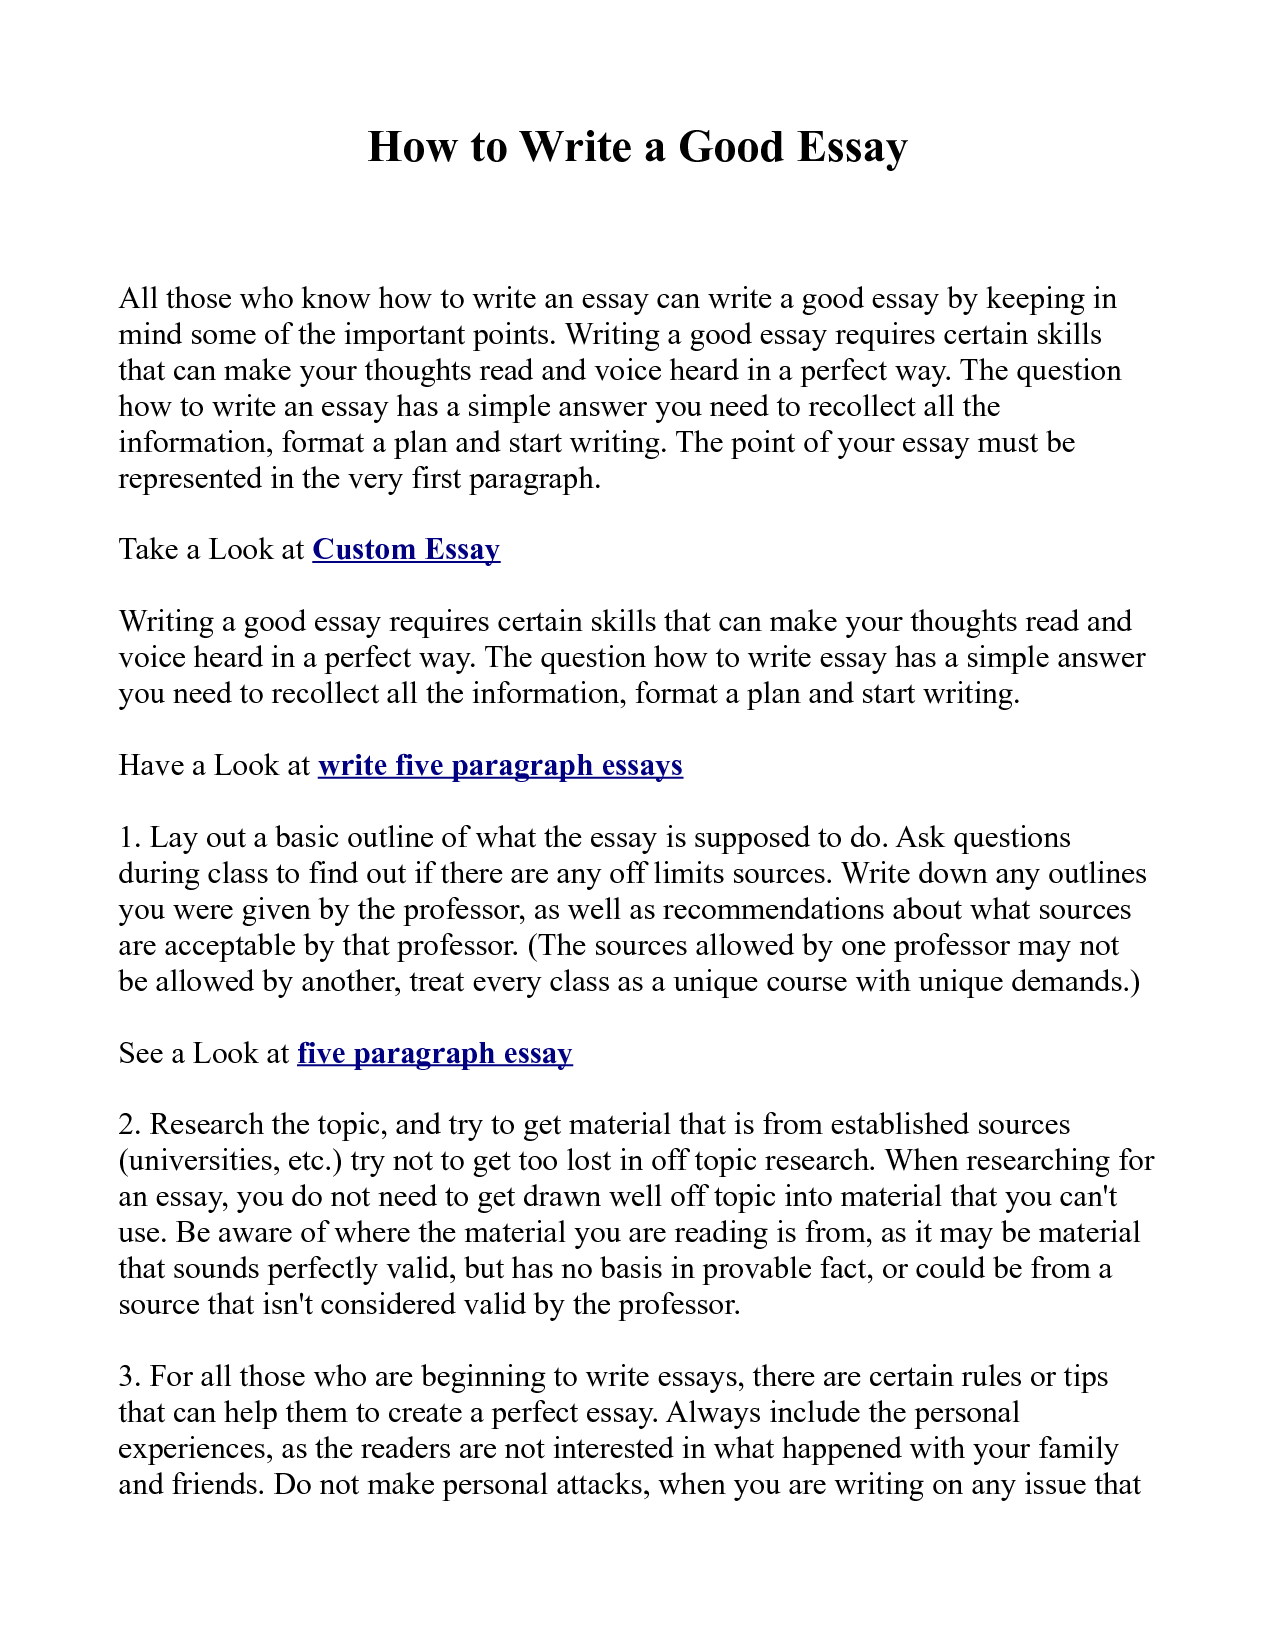 whats a good topic to write a persuasive essay on 24 introduction and conclusion every essay or paper designed to be persuasive needs a introductions and conclusions are crucial in persuasive writing.